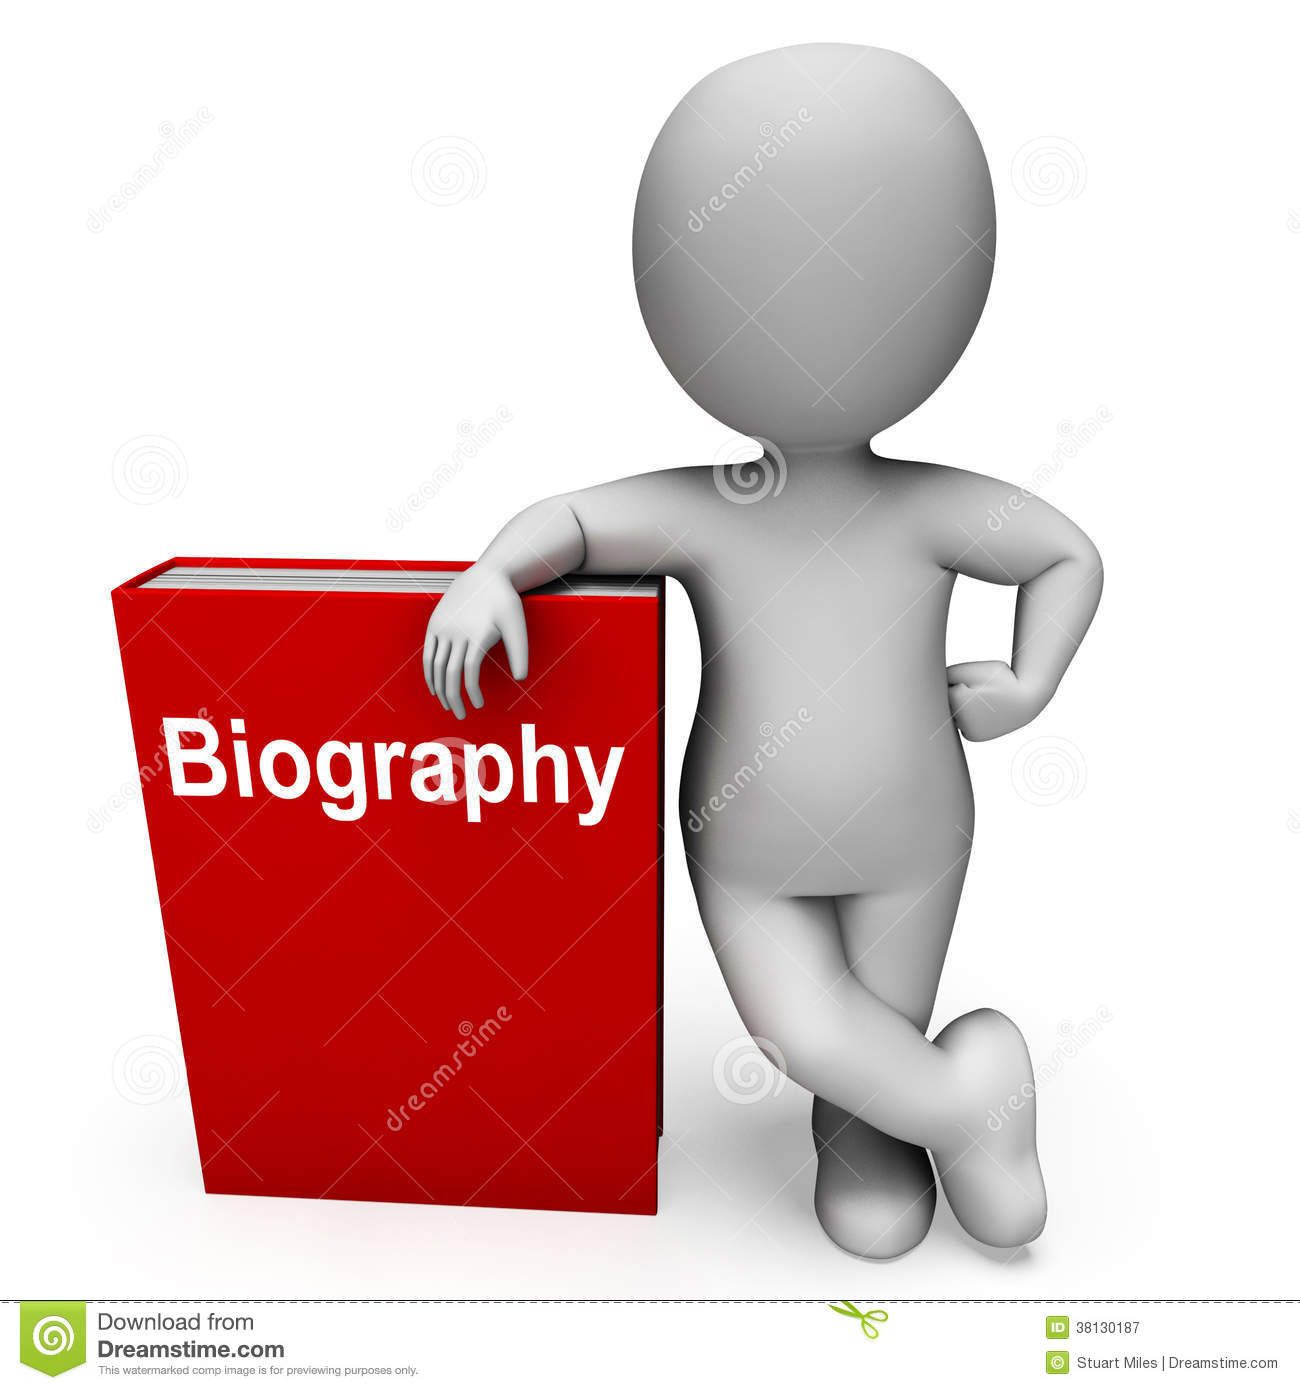 Bibliography clipart image royalty free library Biography Clip Art | Clipart Panda - Free Clipart Images image royalty free library